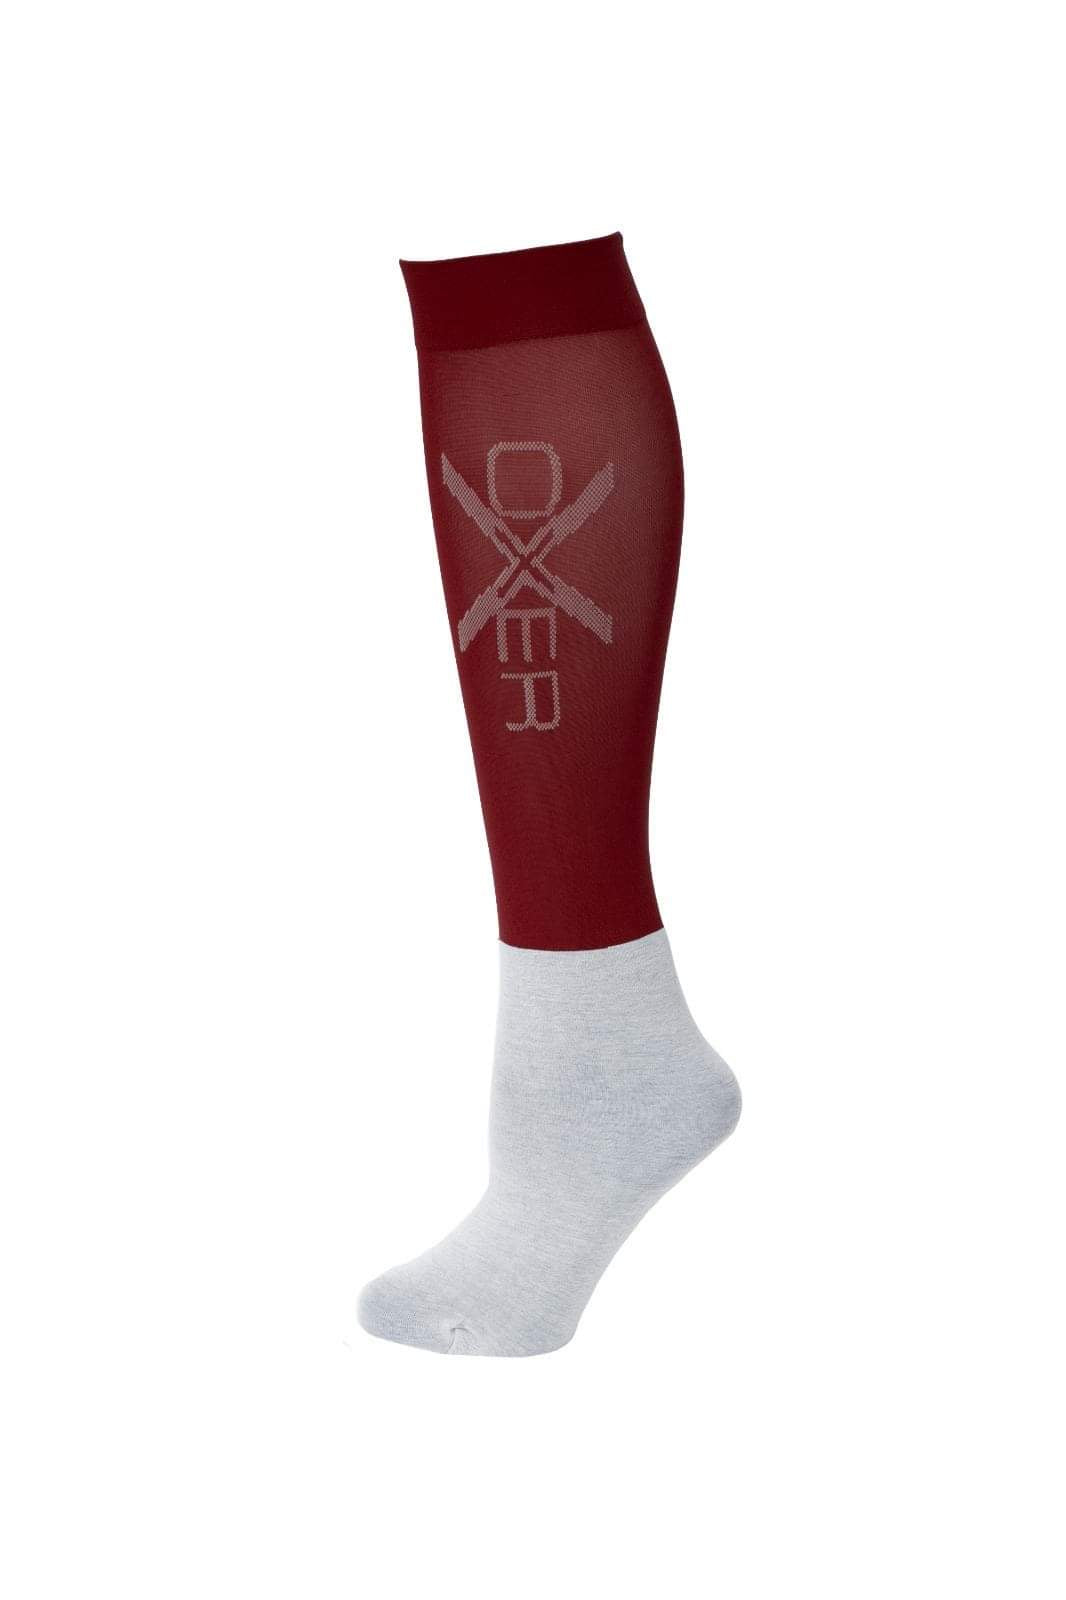 Oxer Riding Socks in Burgundy Pack of 3